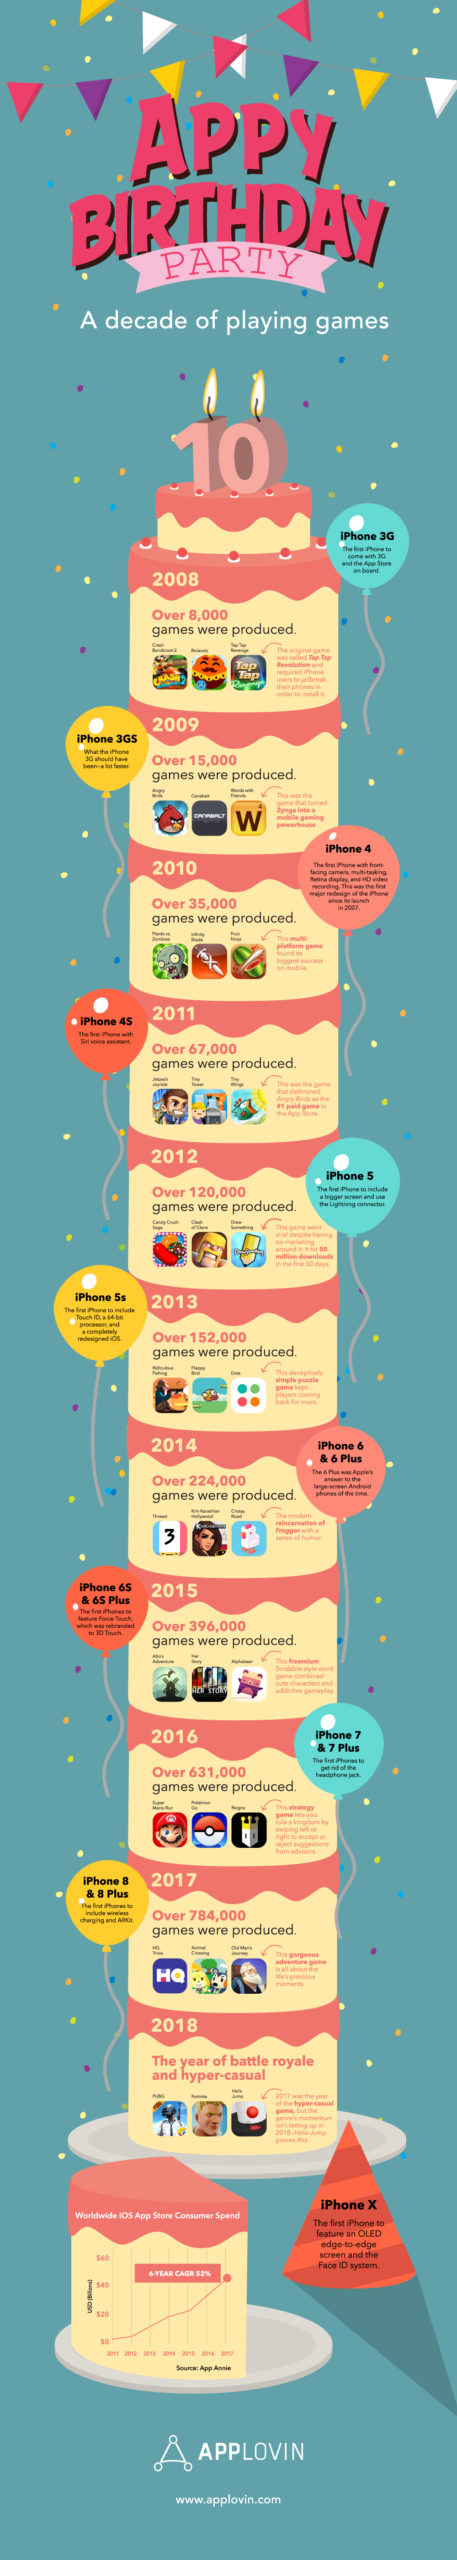 AppLovin-AppyBirthday-Infographic-Final-Outlined-1000w